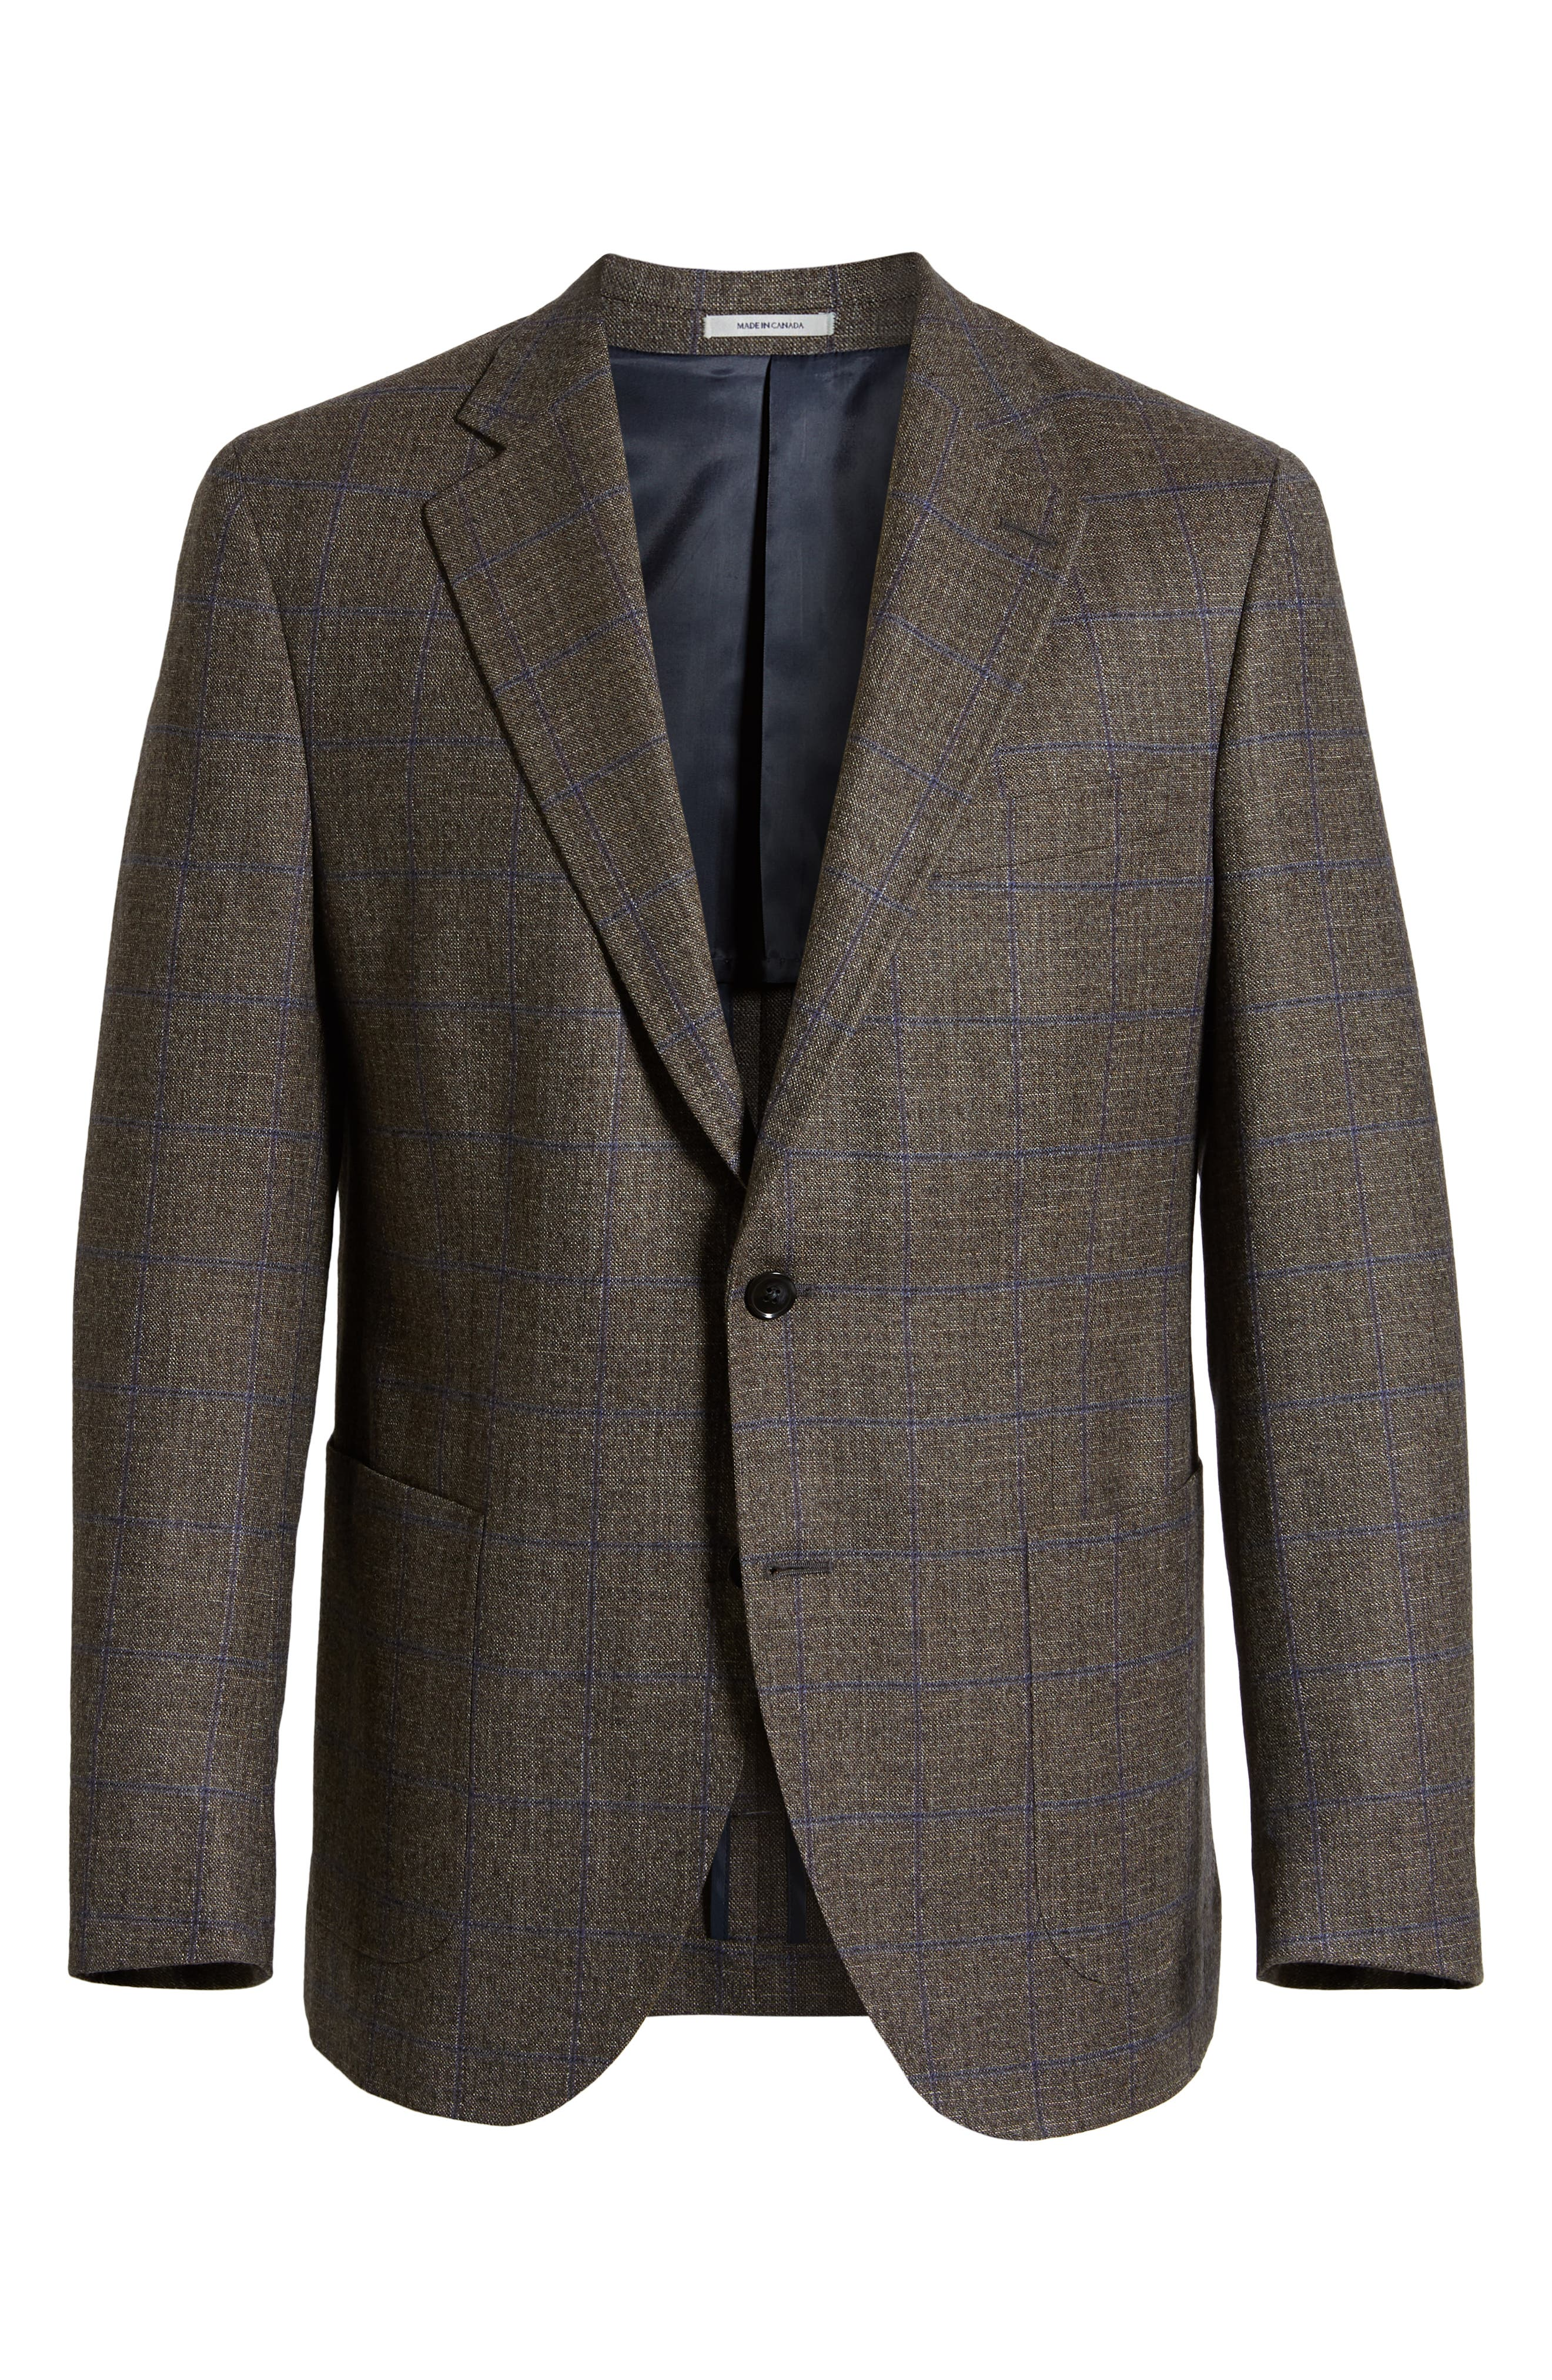 Hyperlight Classic Fit Wool Sport Coat,                             Alternate thumbnail 5, color,                             BROWN